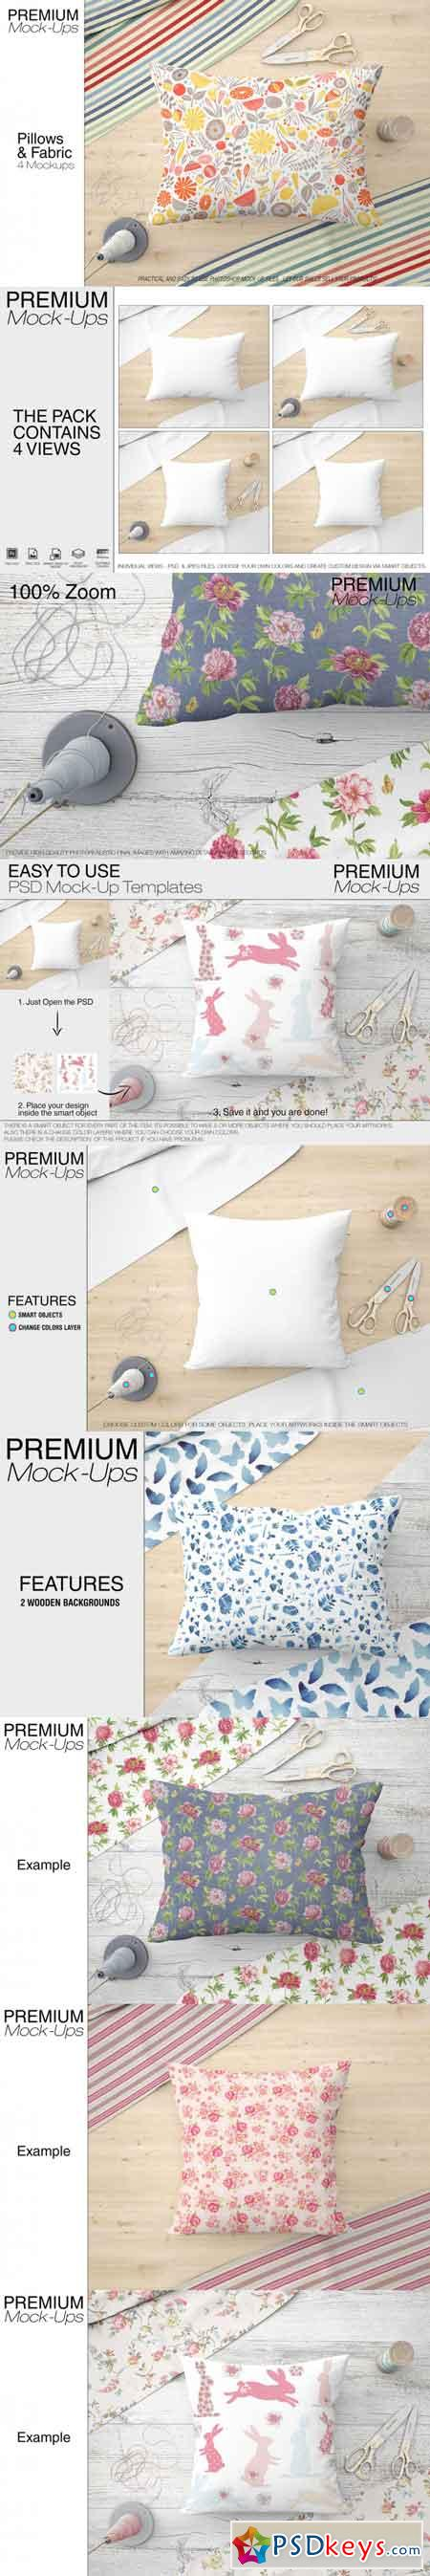 Two Types of Pillows & Fabric Set 3451677